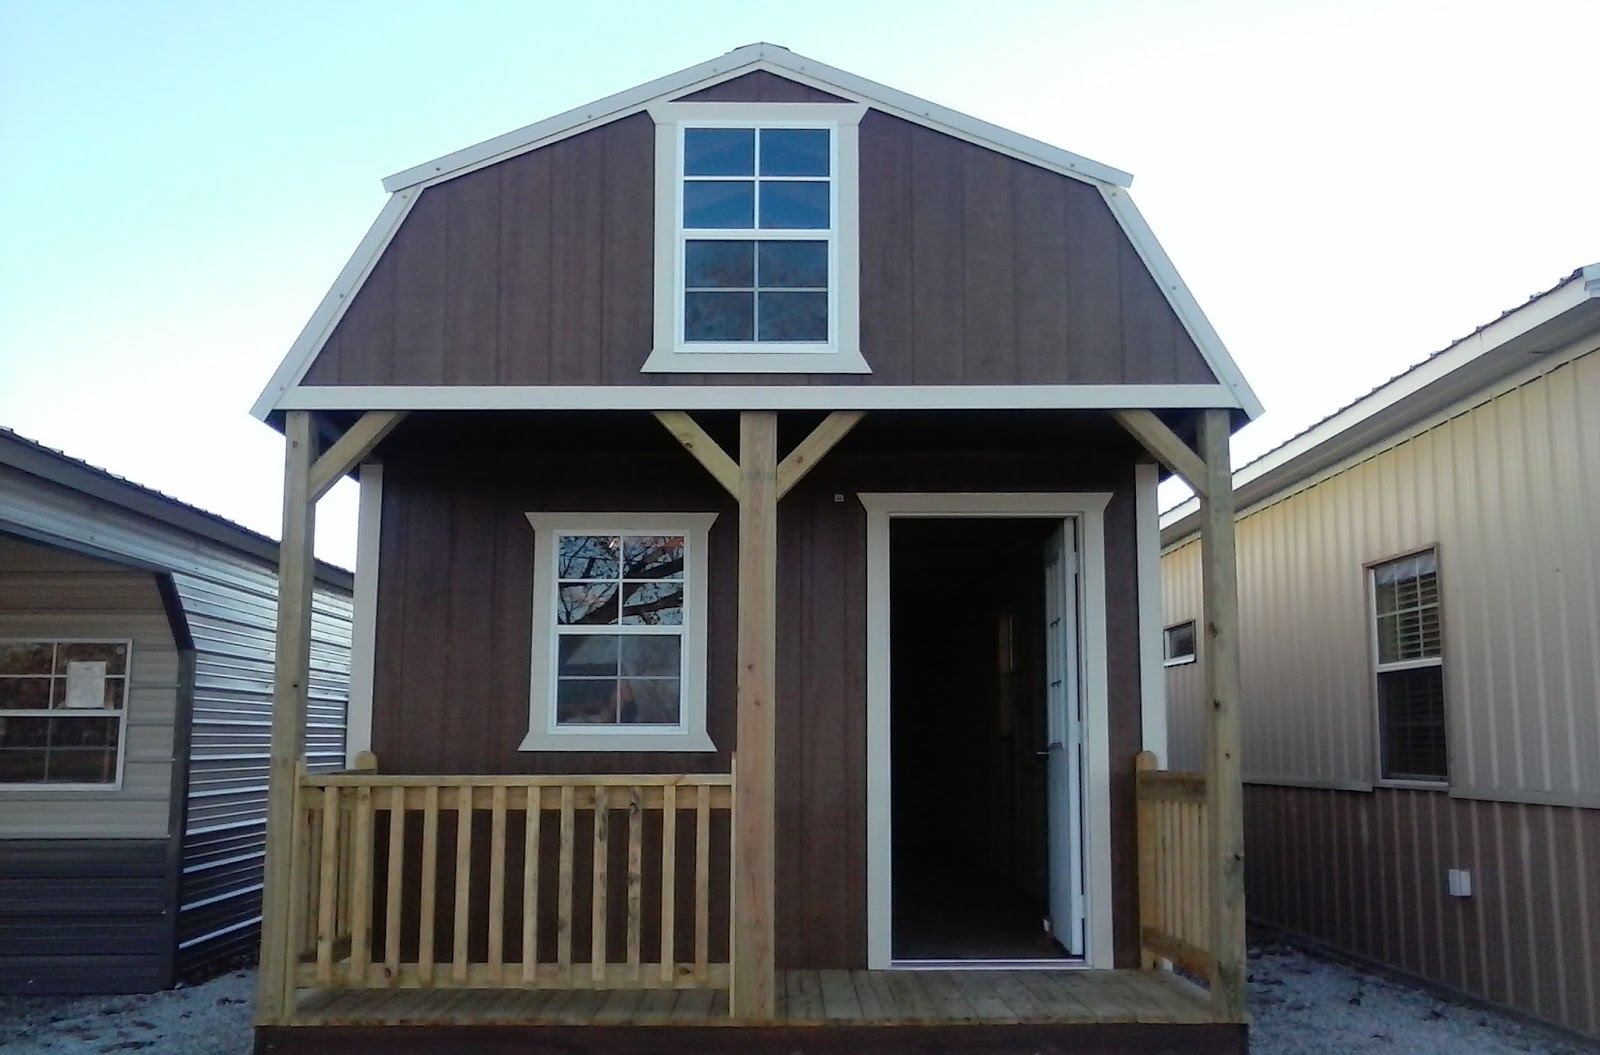 Buildings Etc  Sherman, Whitesboro-Sheds, Carports & More! 940-665